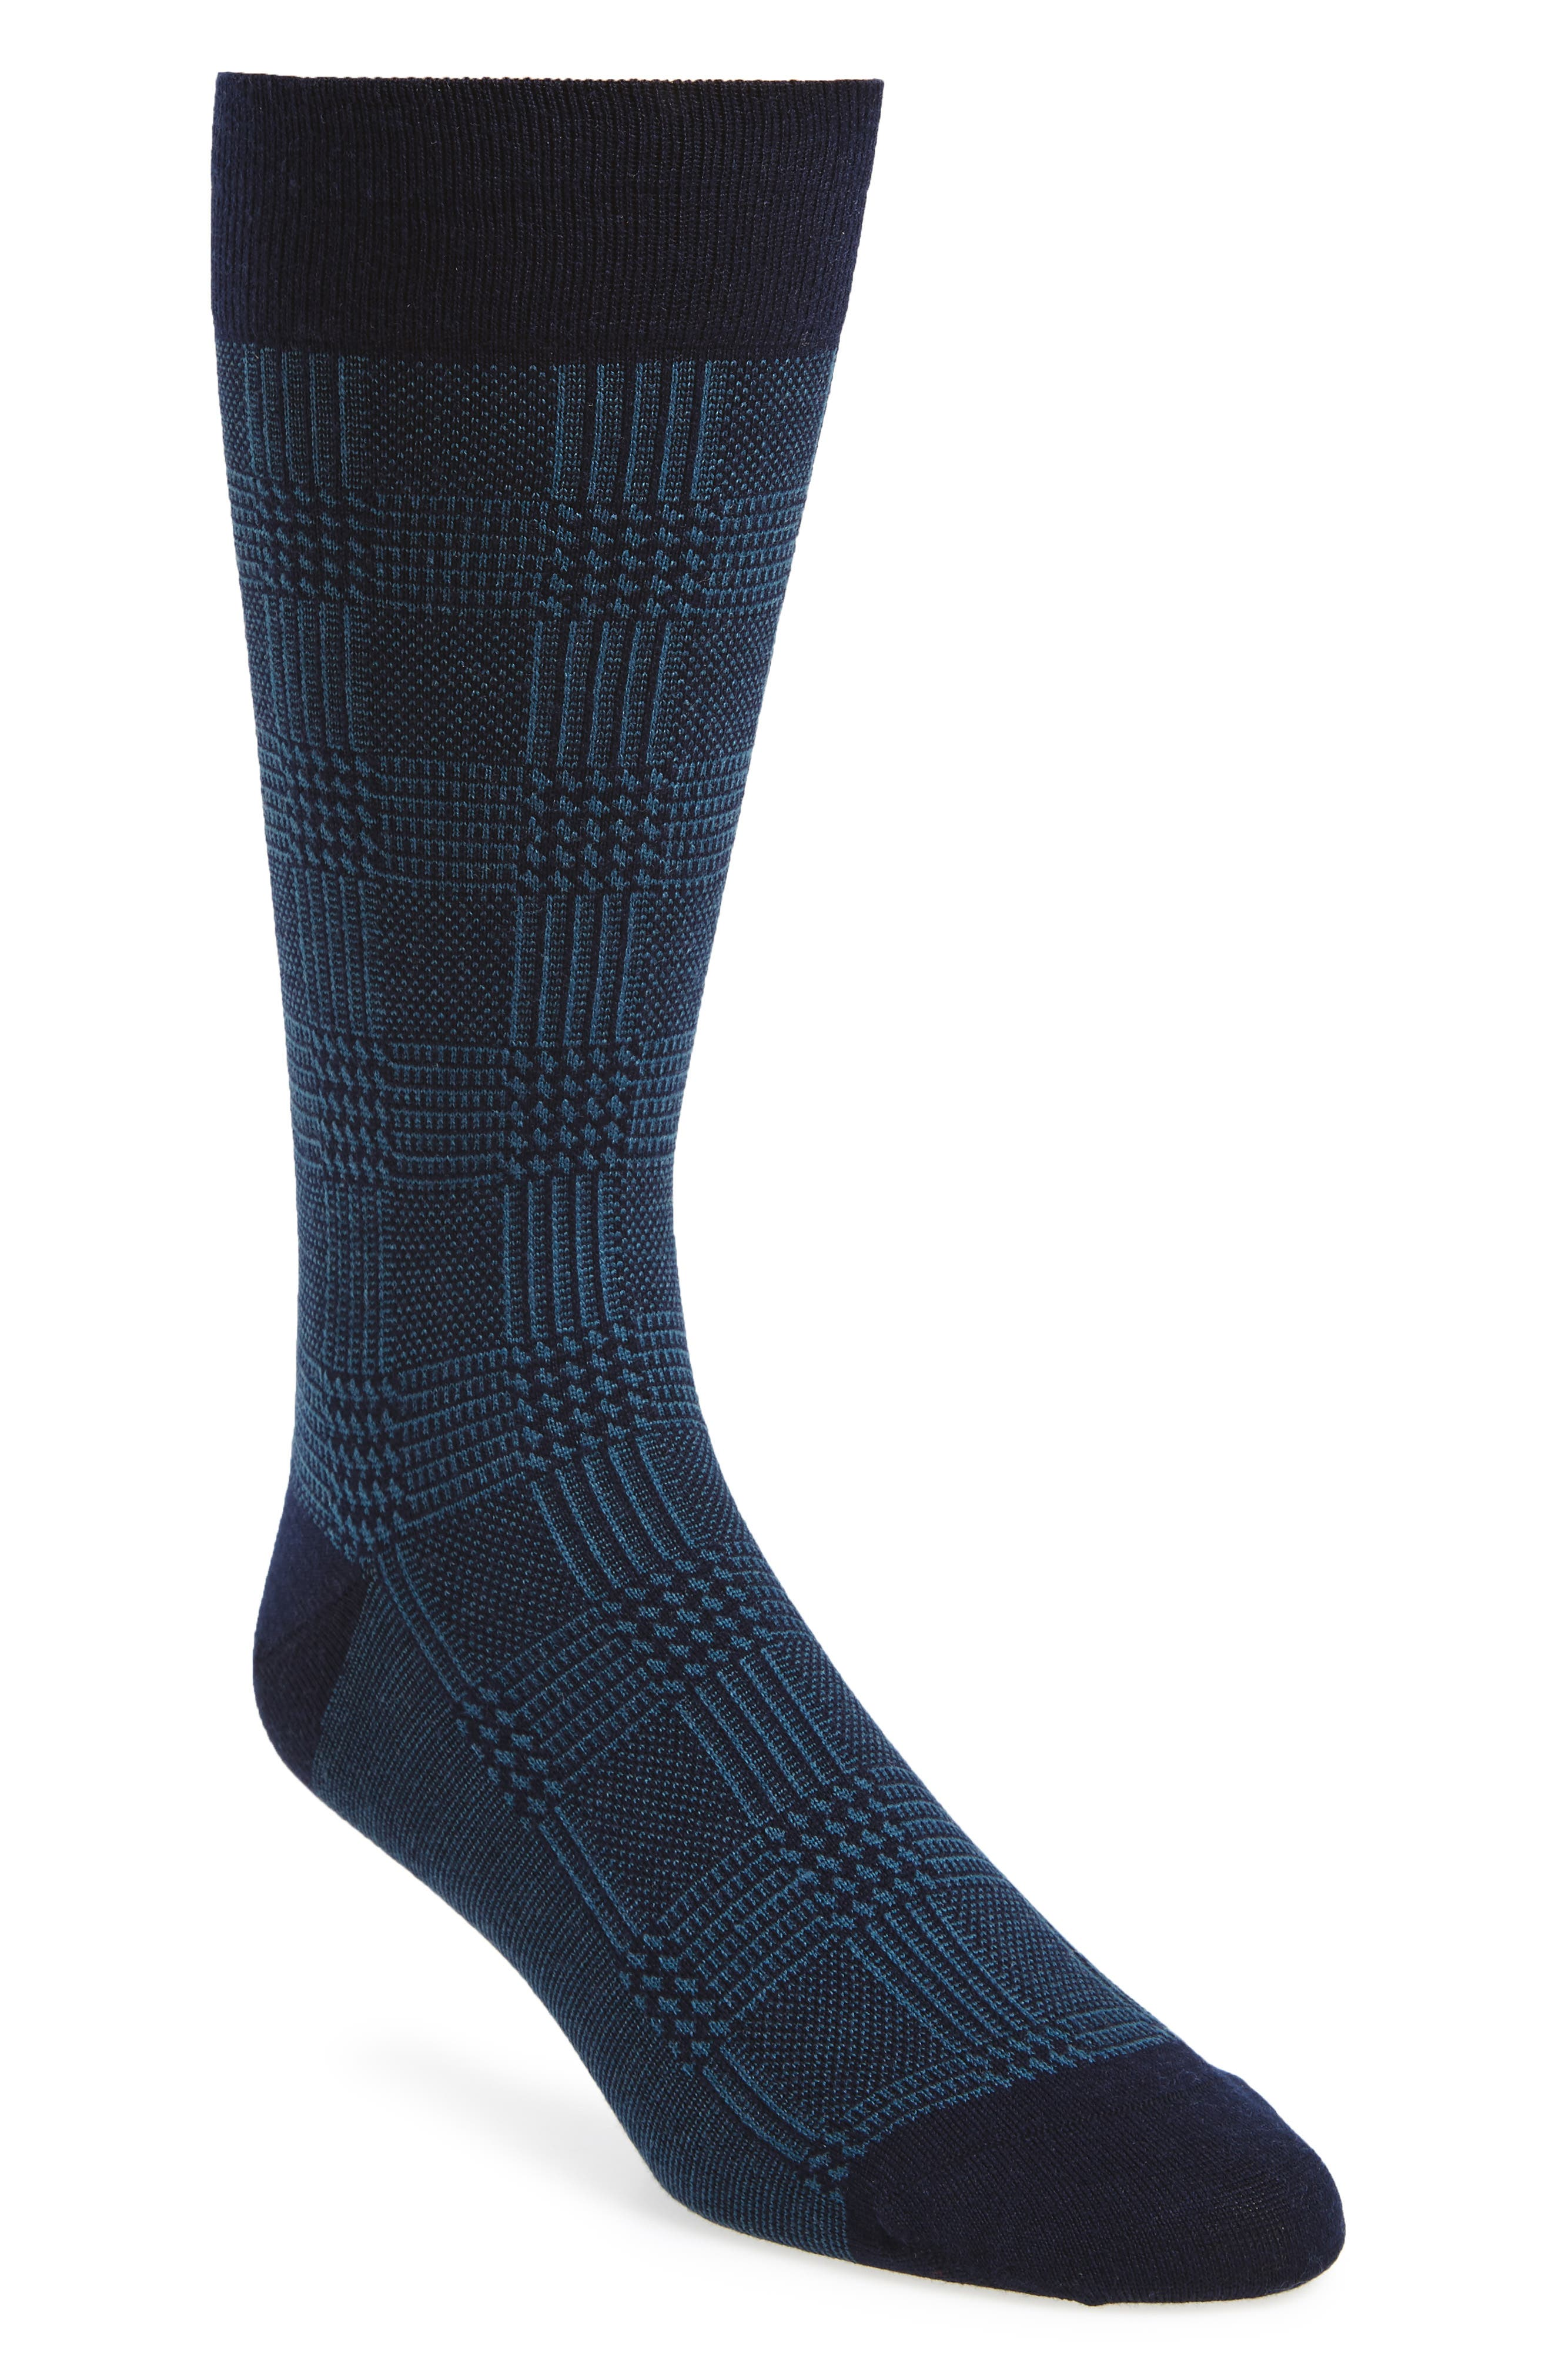 Blue Pantherella Socks | Nordstrom